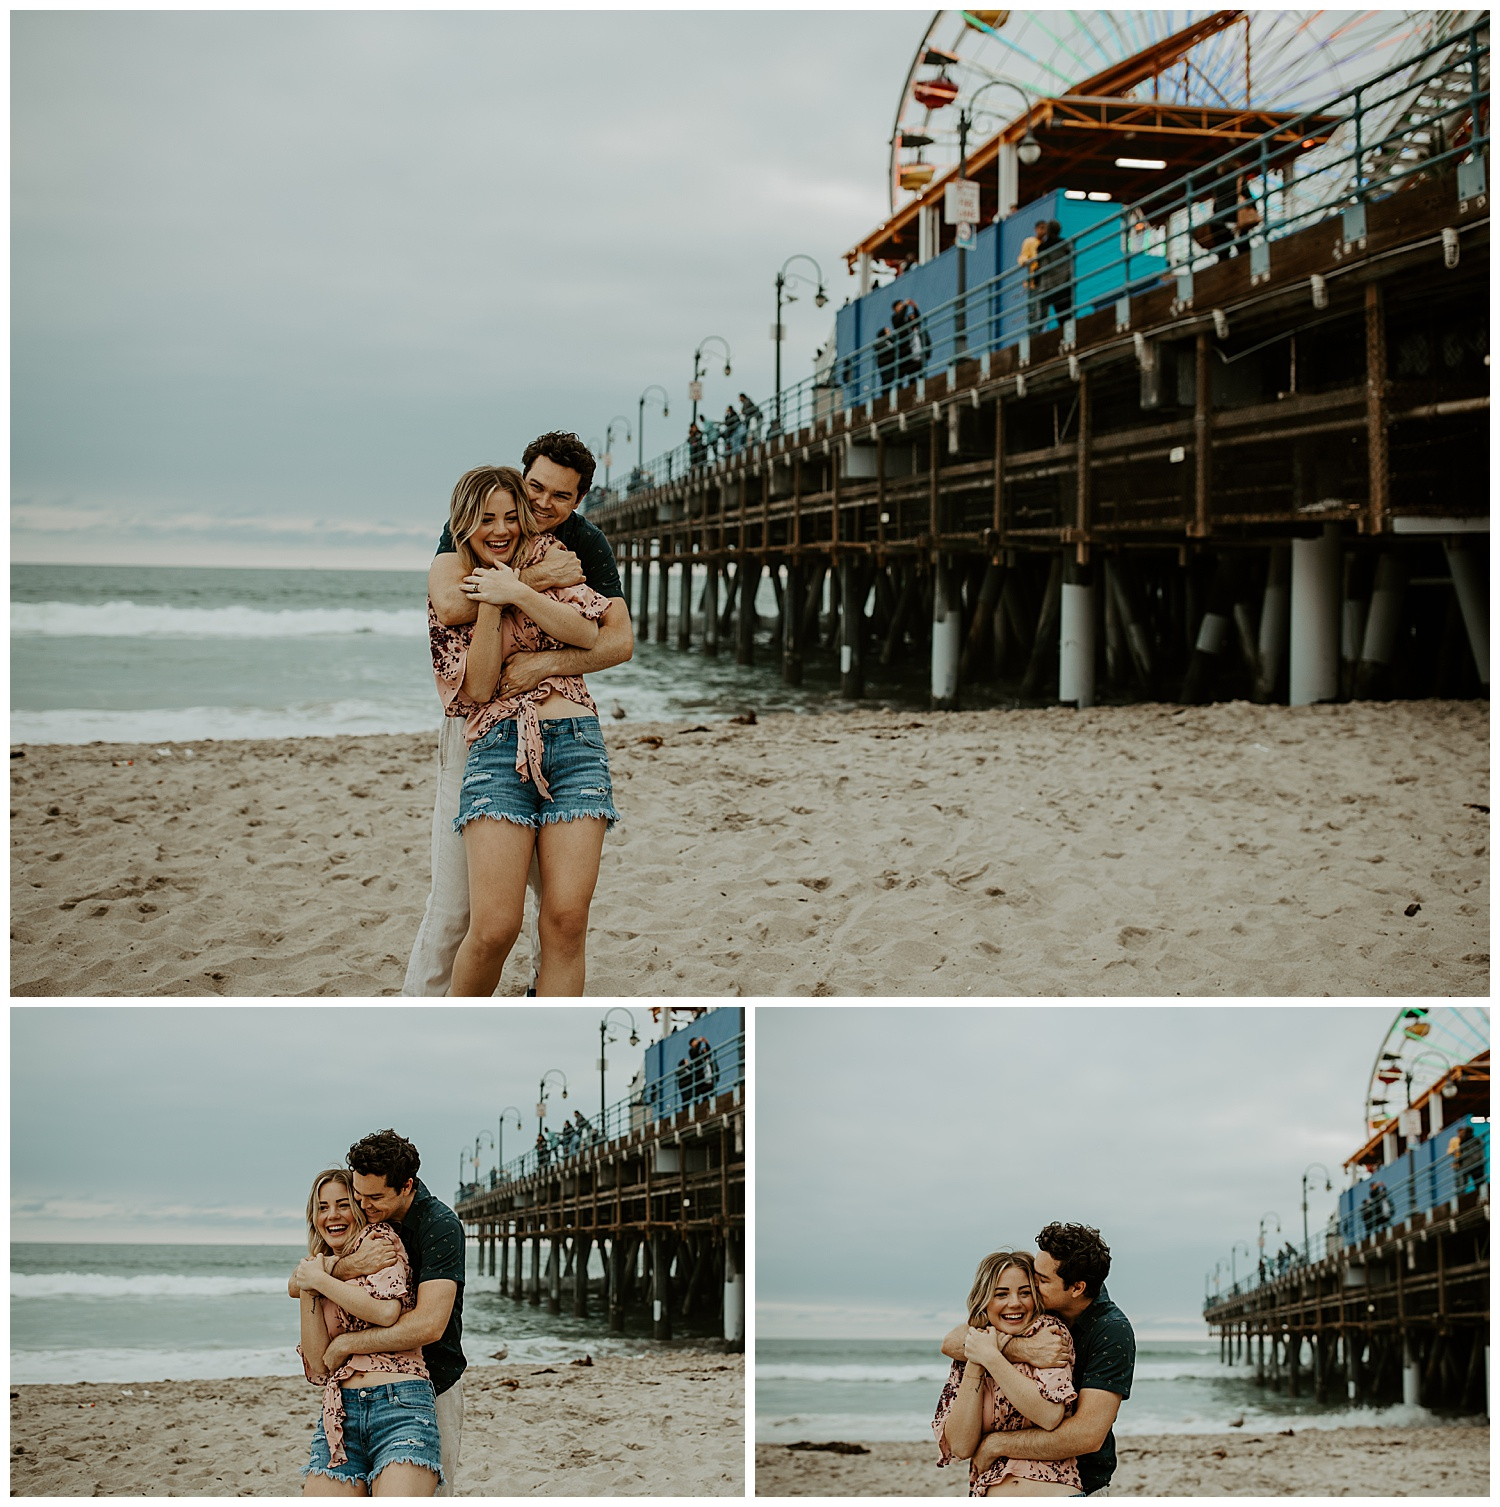 Laken-Mackenzie-Photography-Santa-Monica-Pier-Couples-Session-Kami-TJ-Malibu-Couples-Session15.jpg